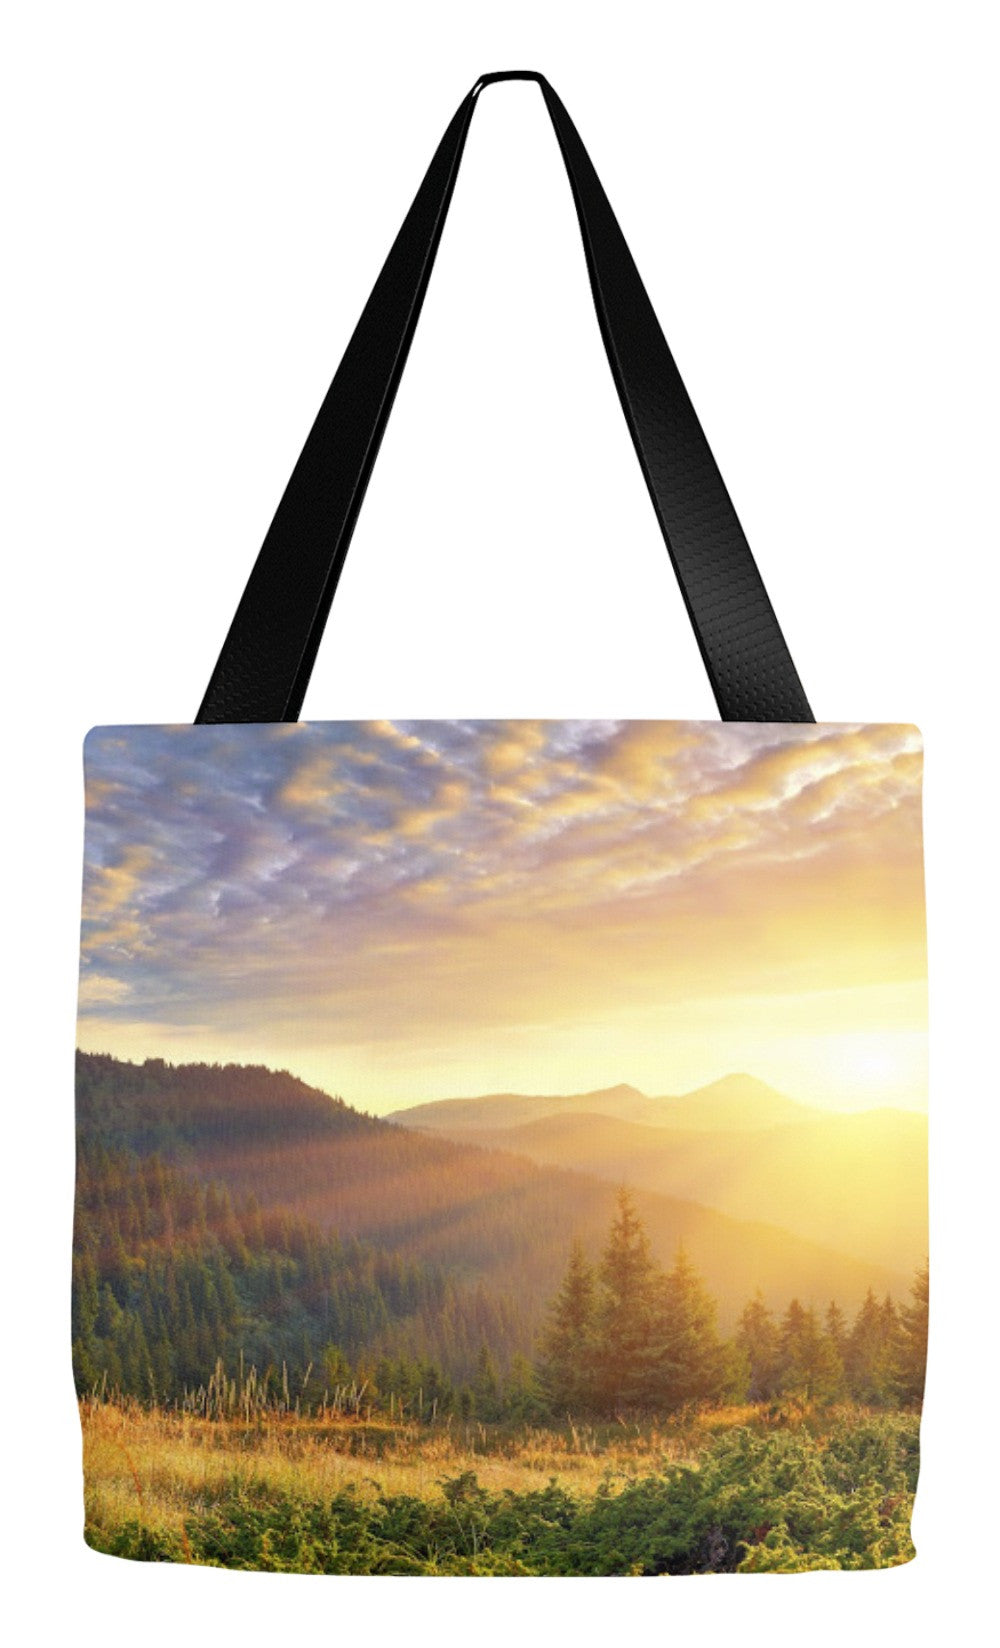 Tote Bag-Sunrise